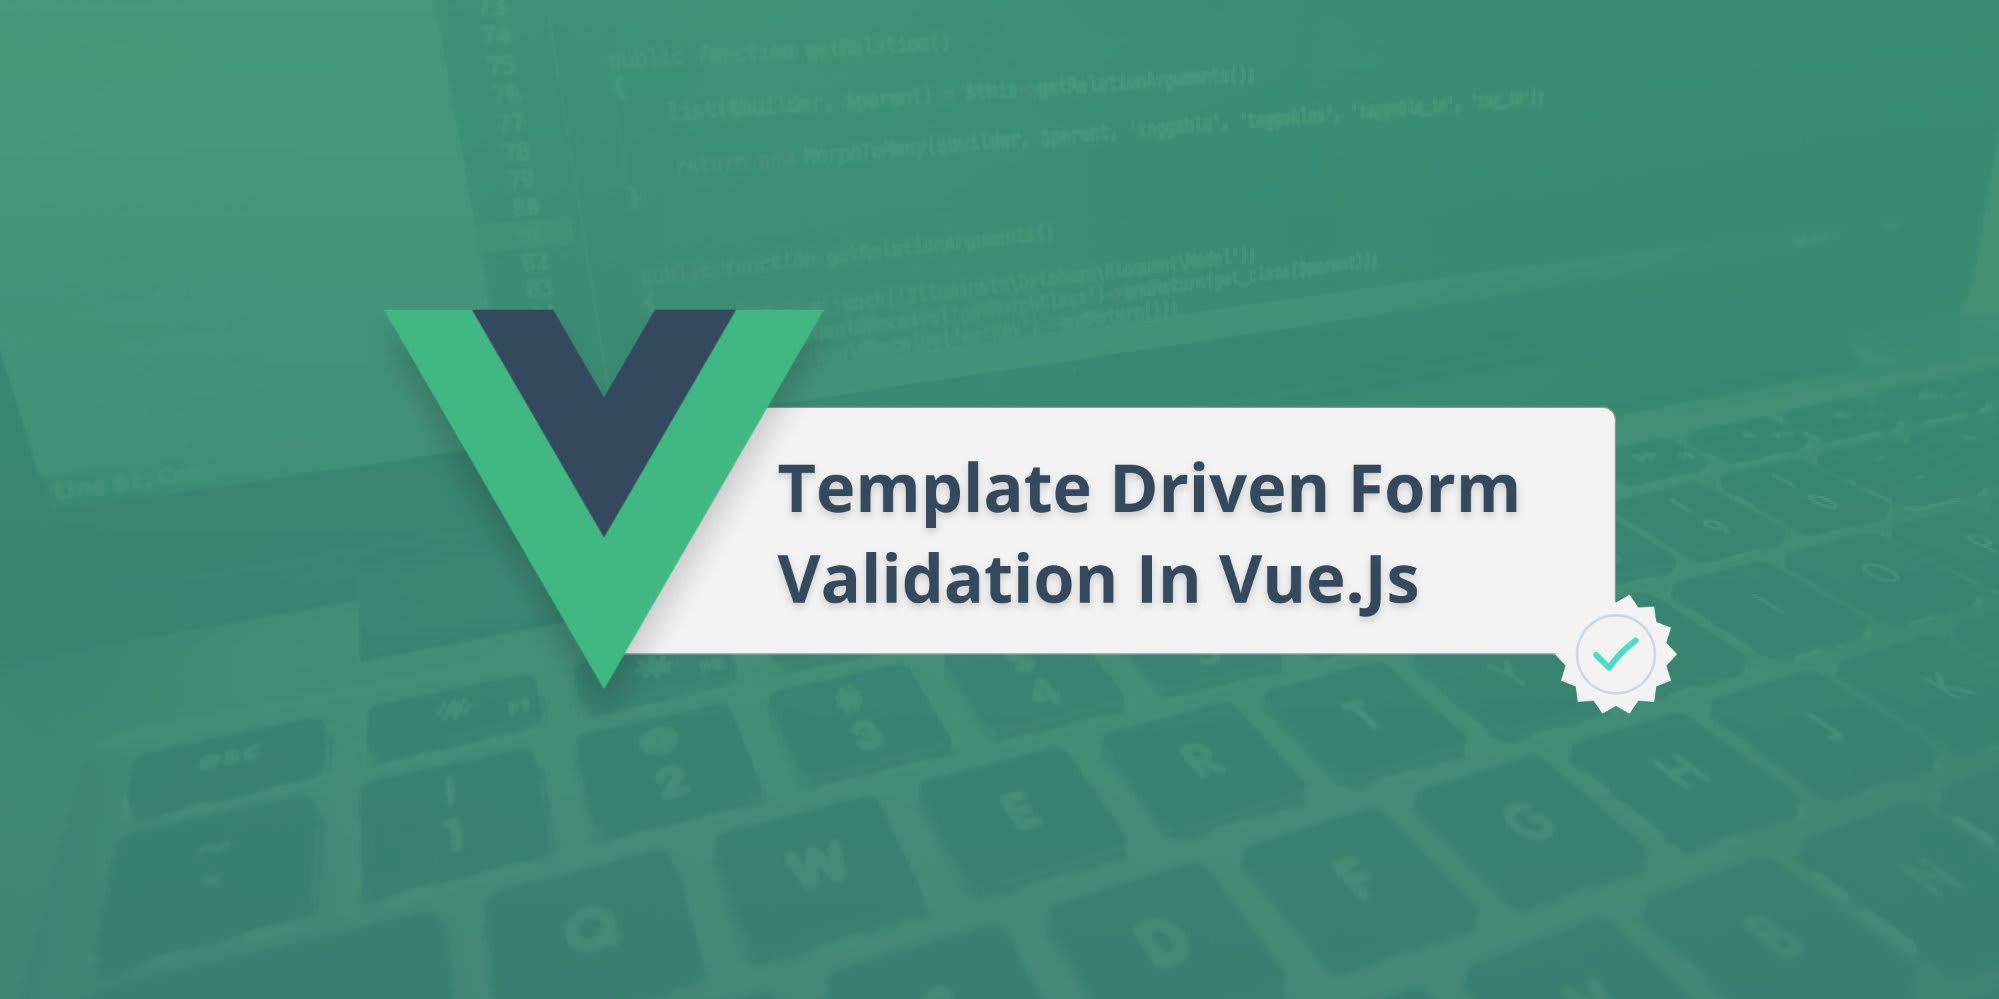 Template Driven Form Validation In Vue js ― Scotch io